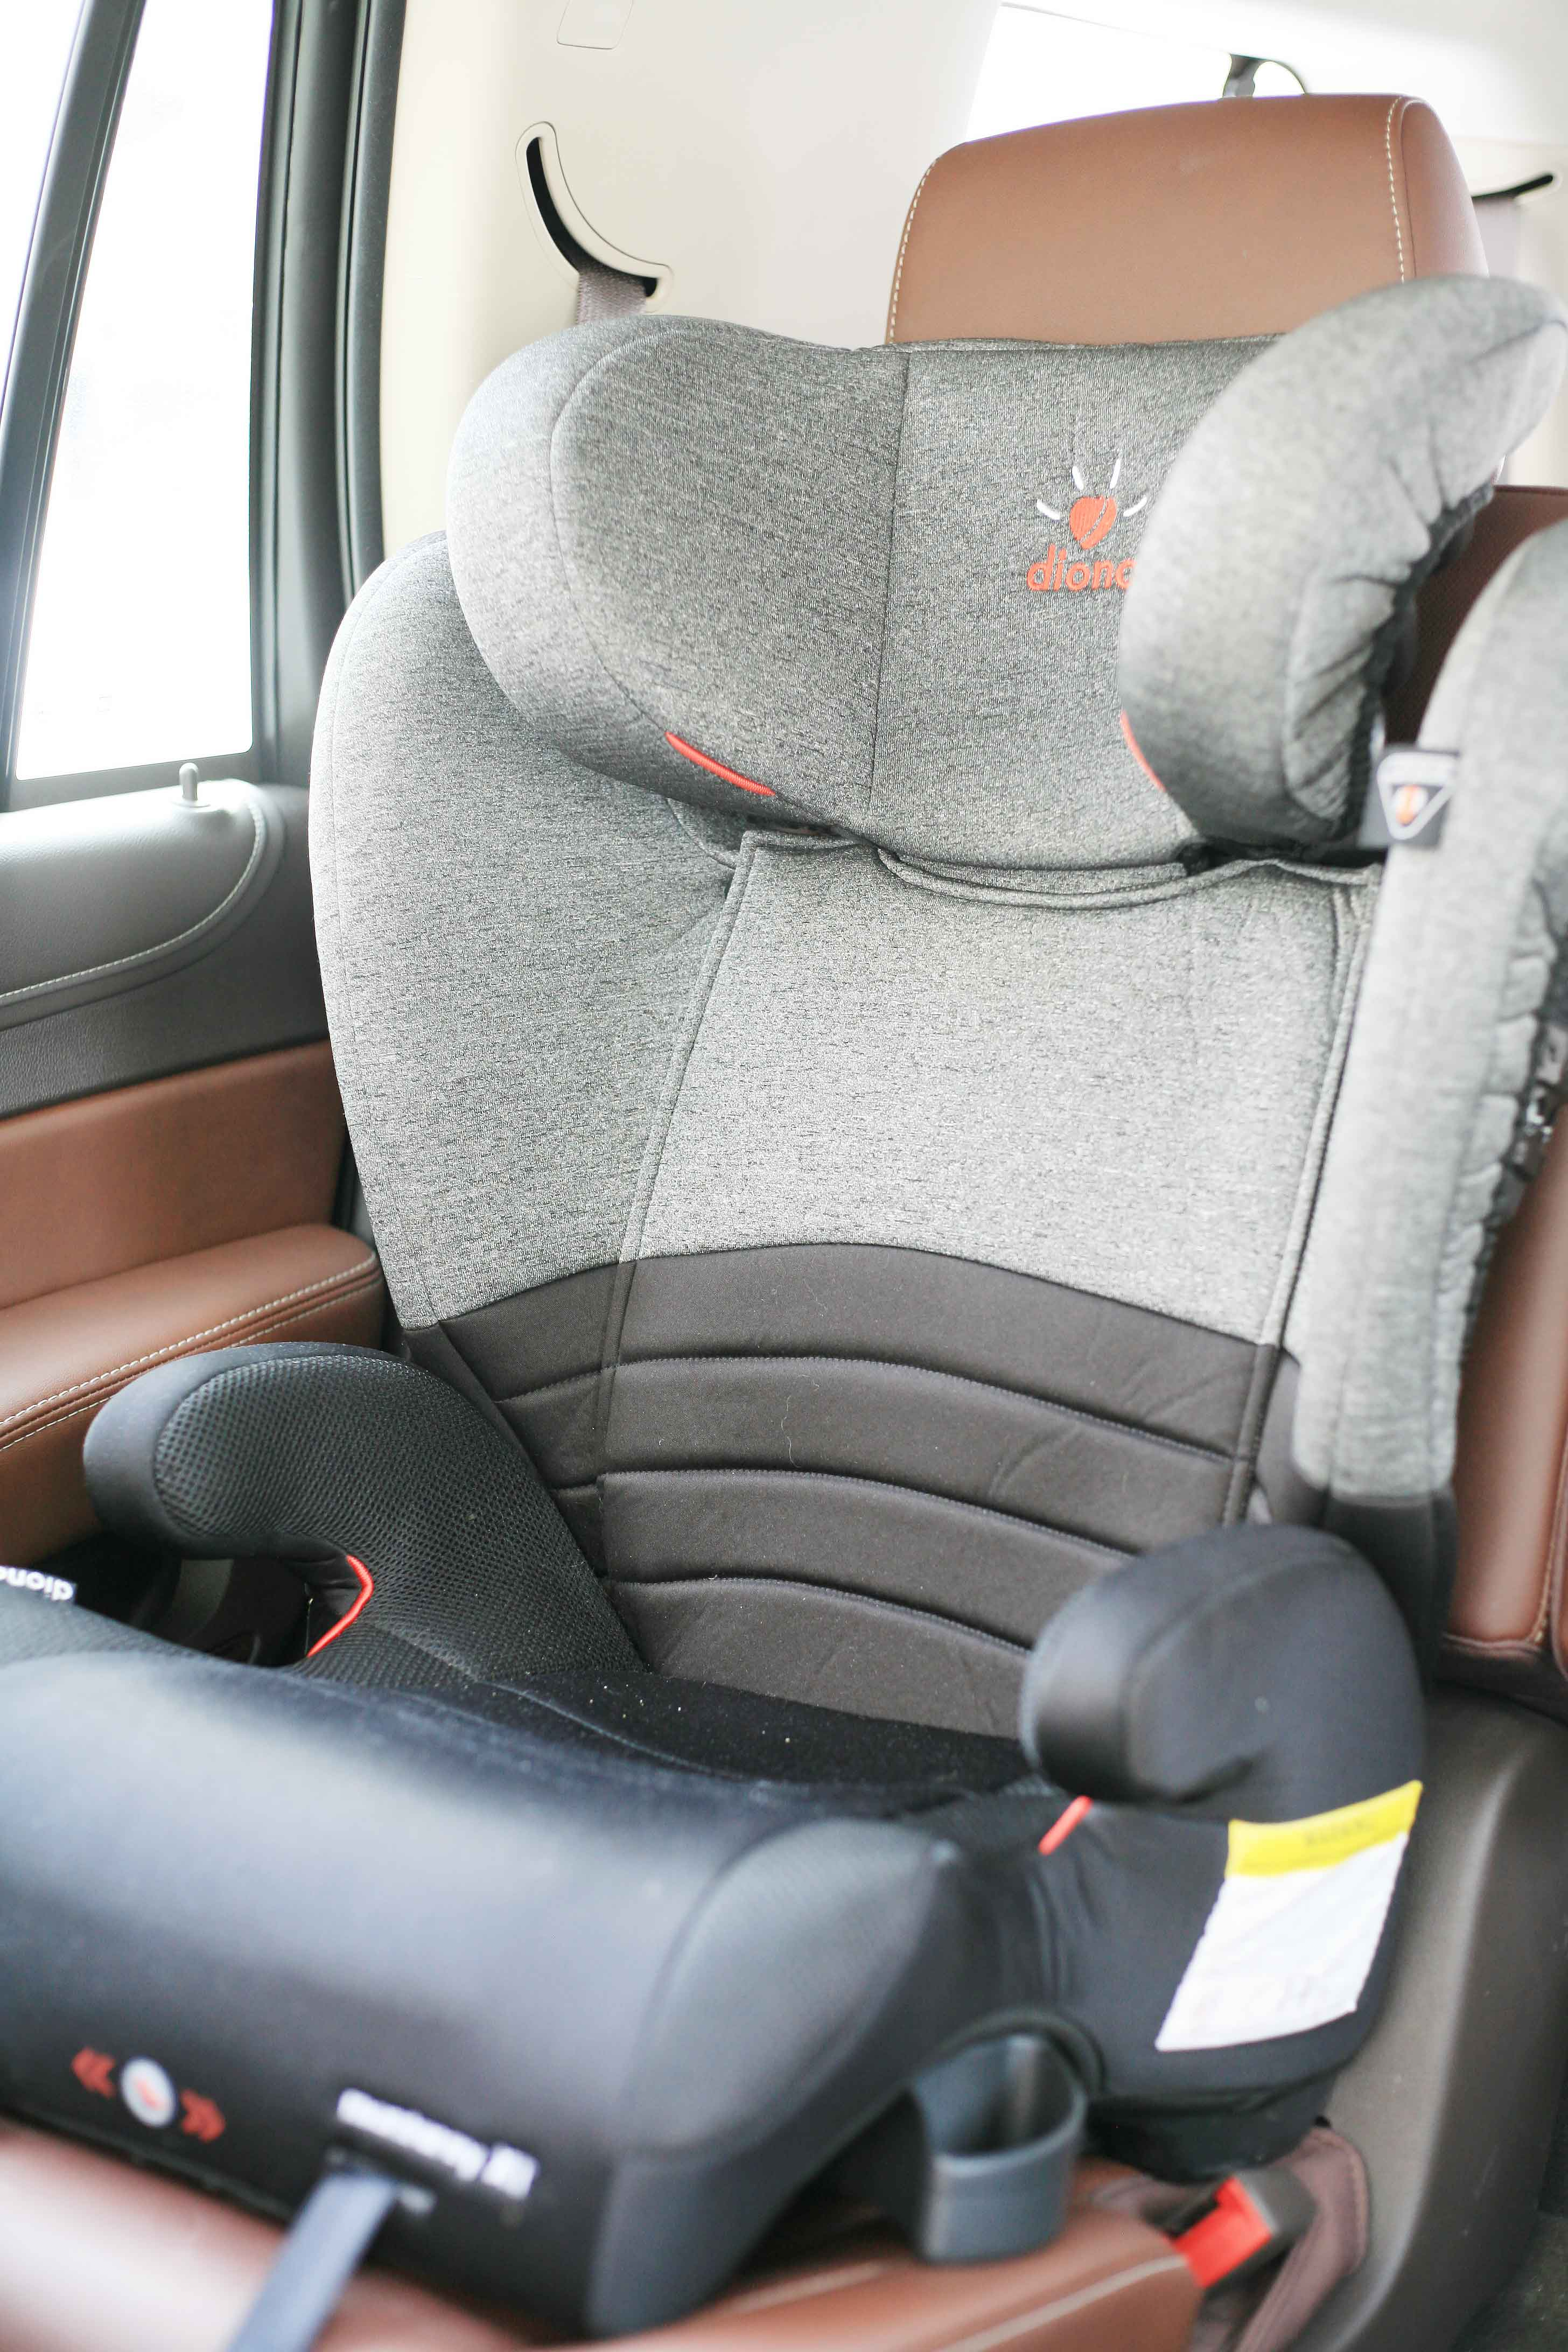 Diono Monterey Xt High Back Booster Car Seat Review